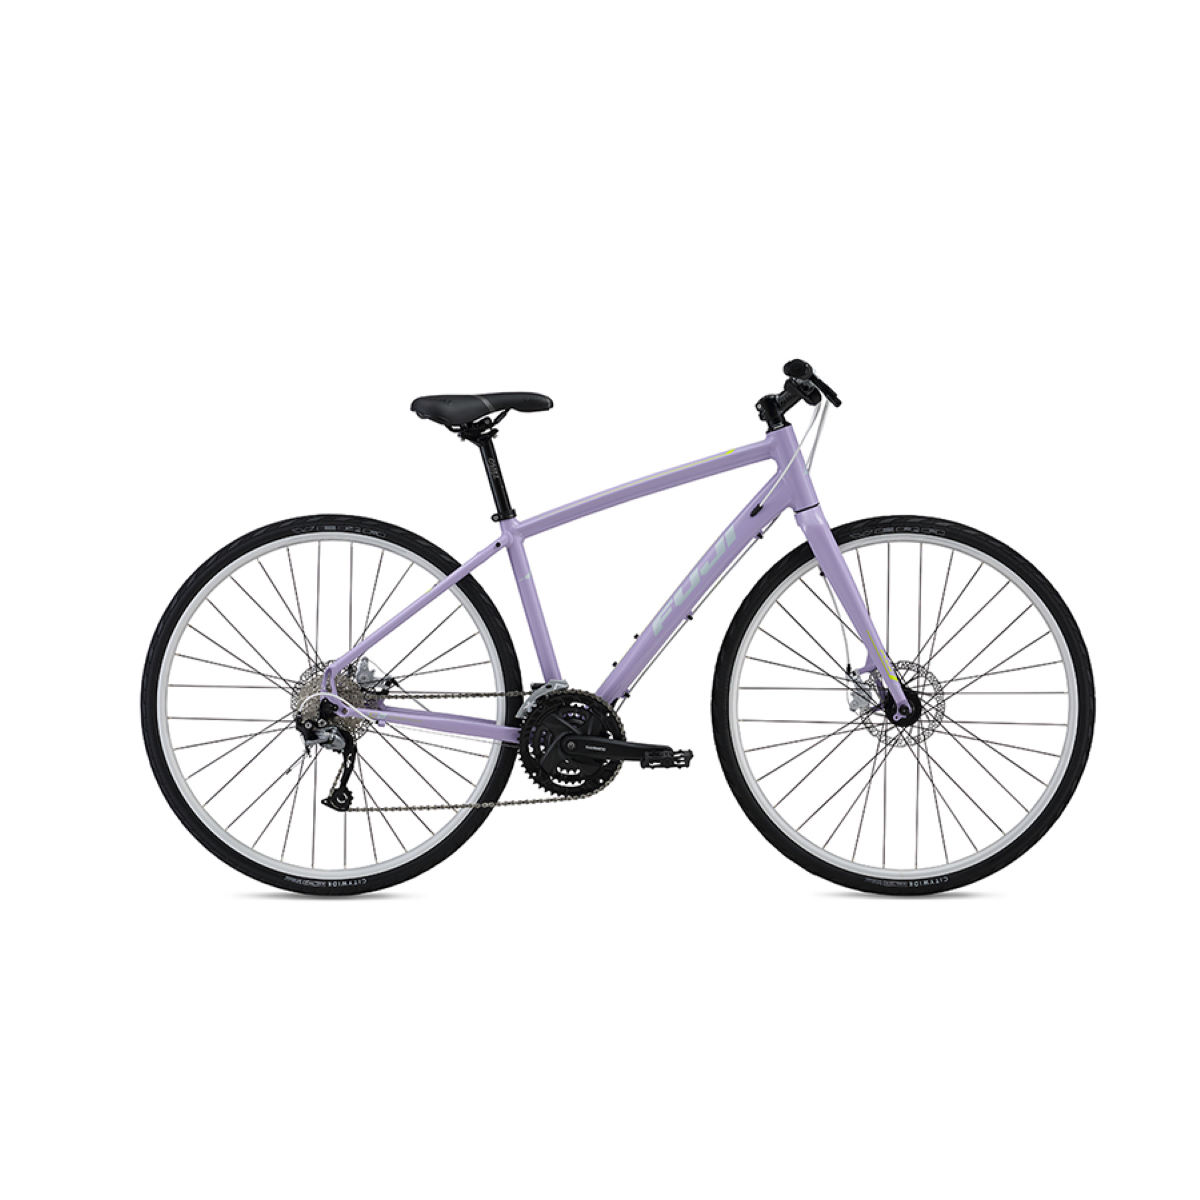 Fuji Silhouette 1.7 (2016) Hybrid Bike - 15'' Stock Bike Light Purple Vélos hybrides & ville